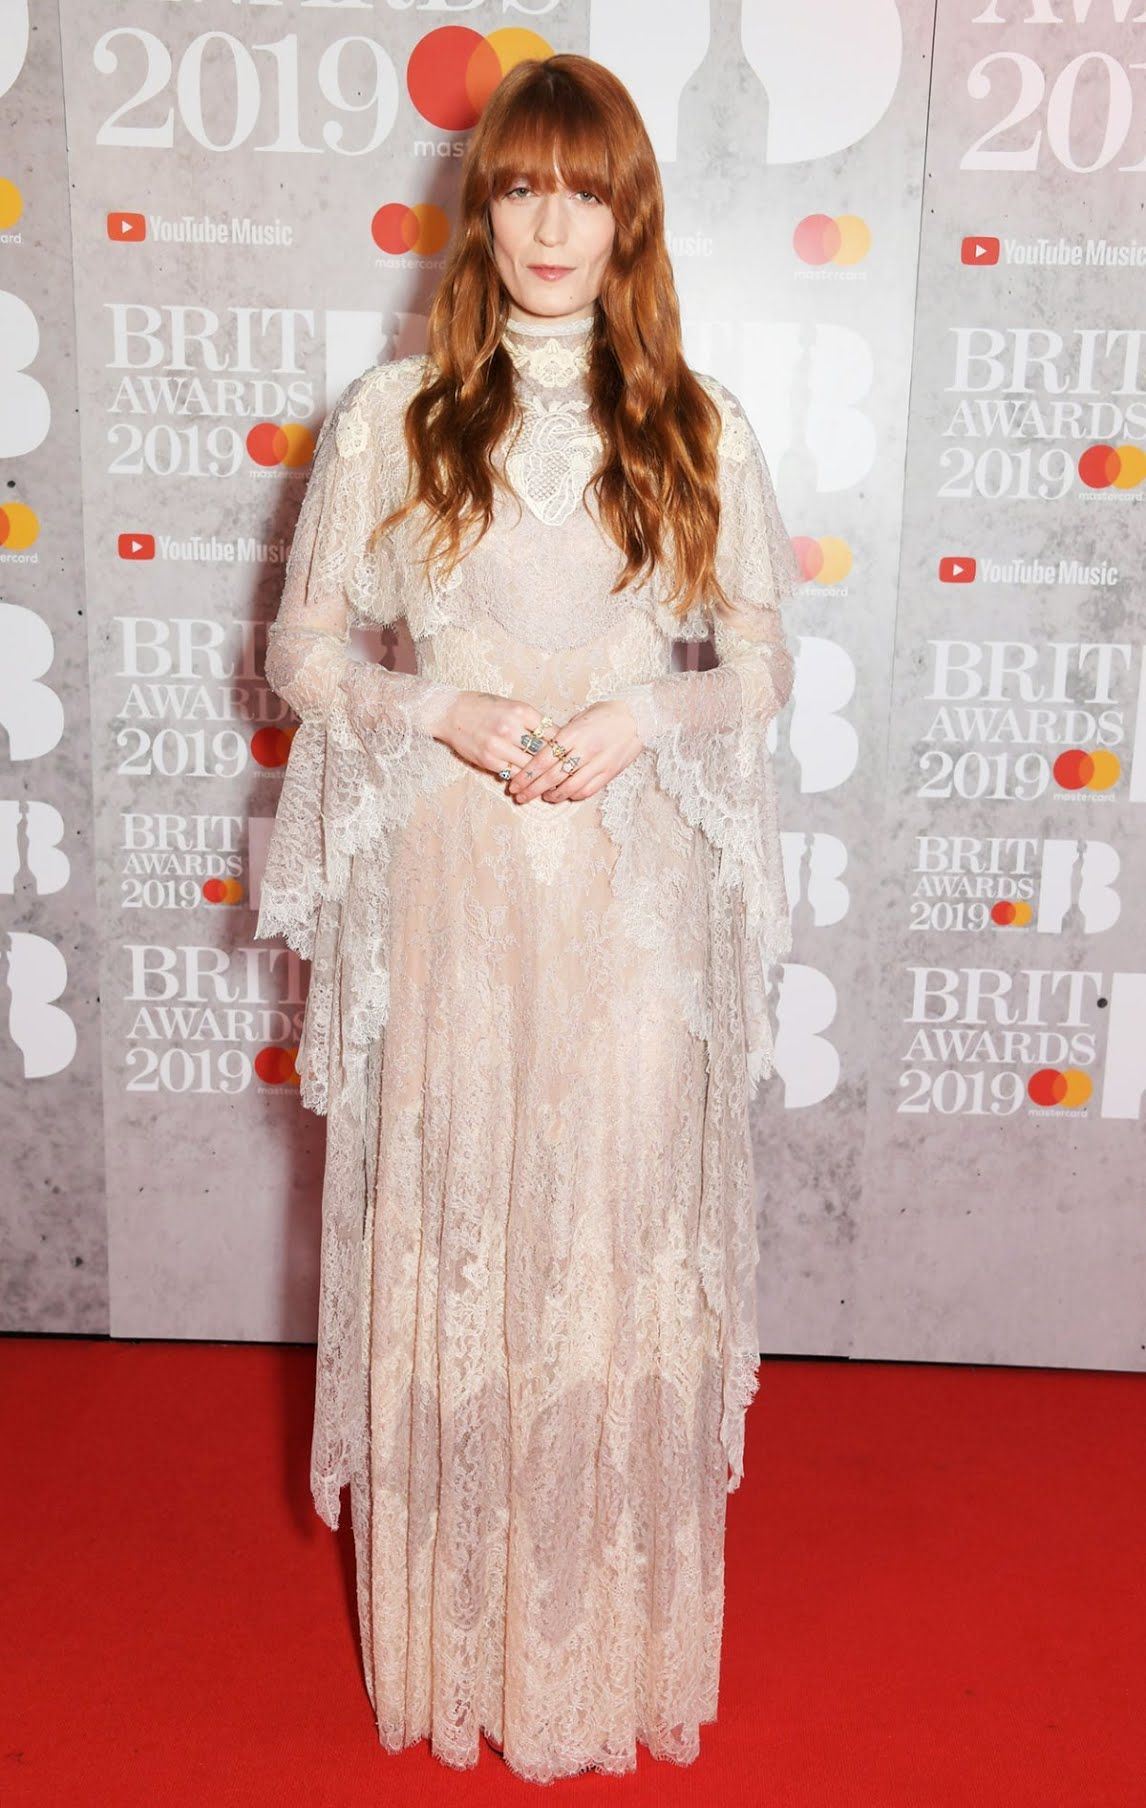 Florence Welch In Gucci at the 2019 Brit Awards Nice